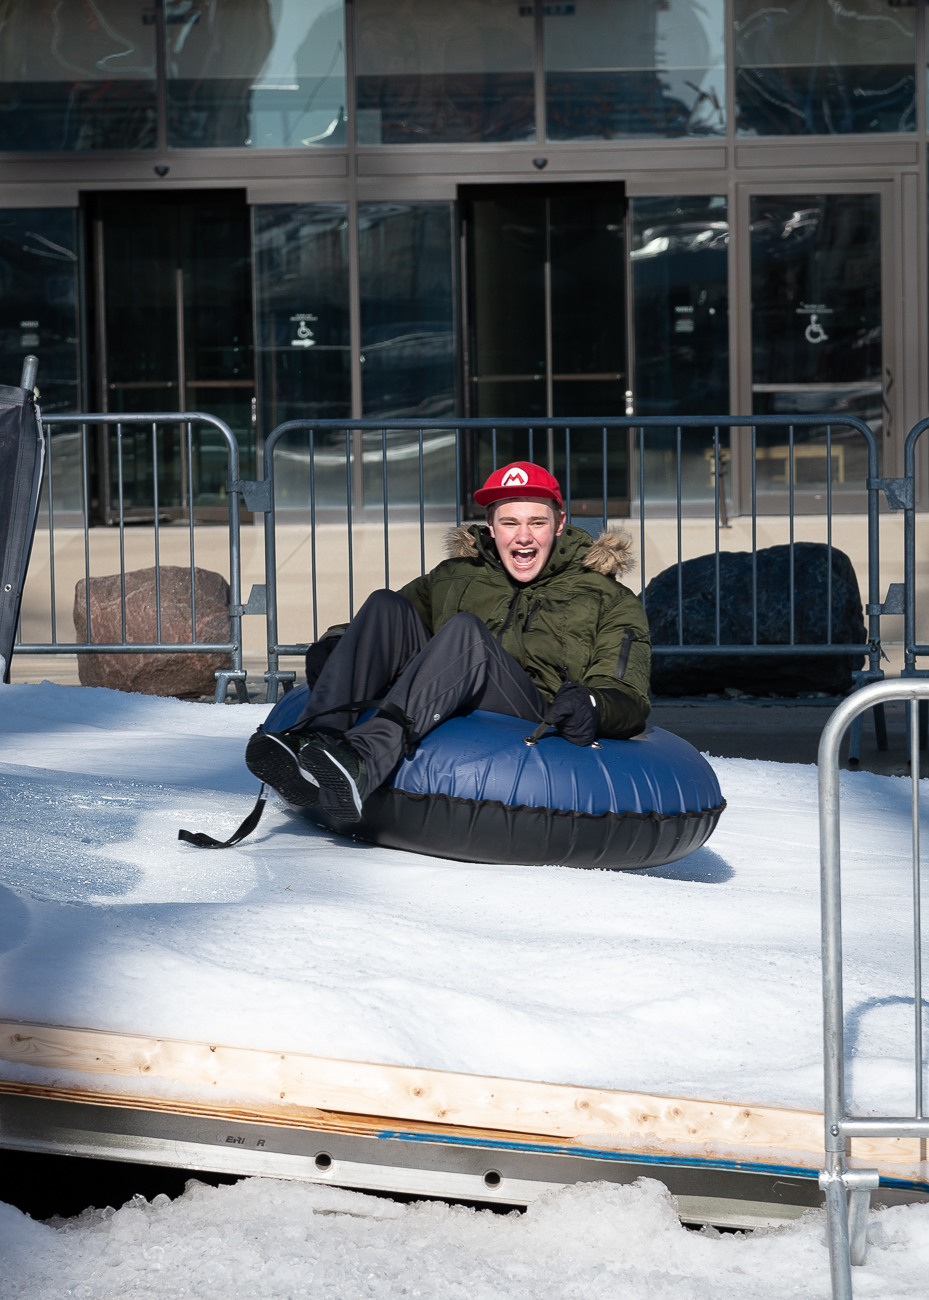 A snow tuber flies down the Frisch's Big Boy Snow Tube Run / Image: Phil Armstrong, Cincinnati Refined // Published: 1.6.20